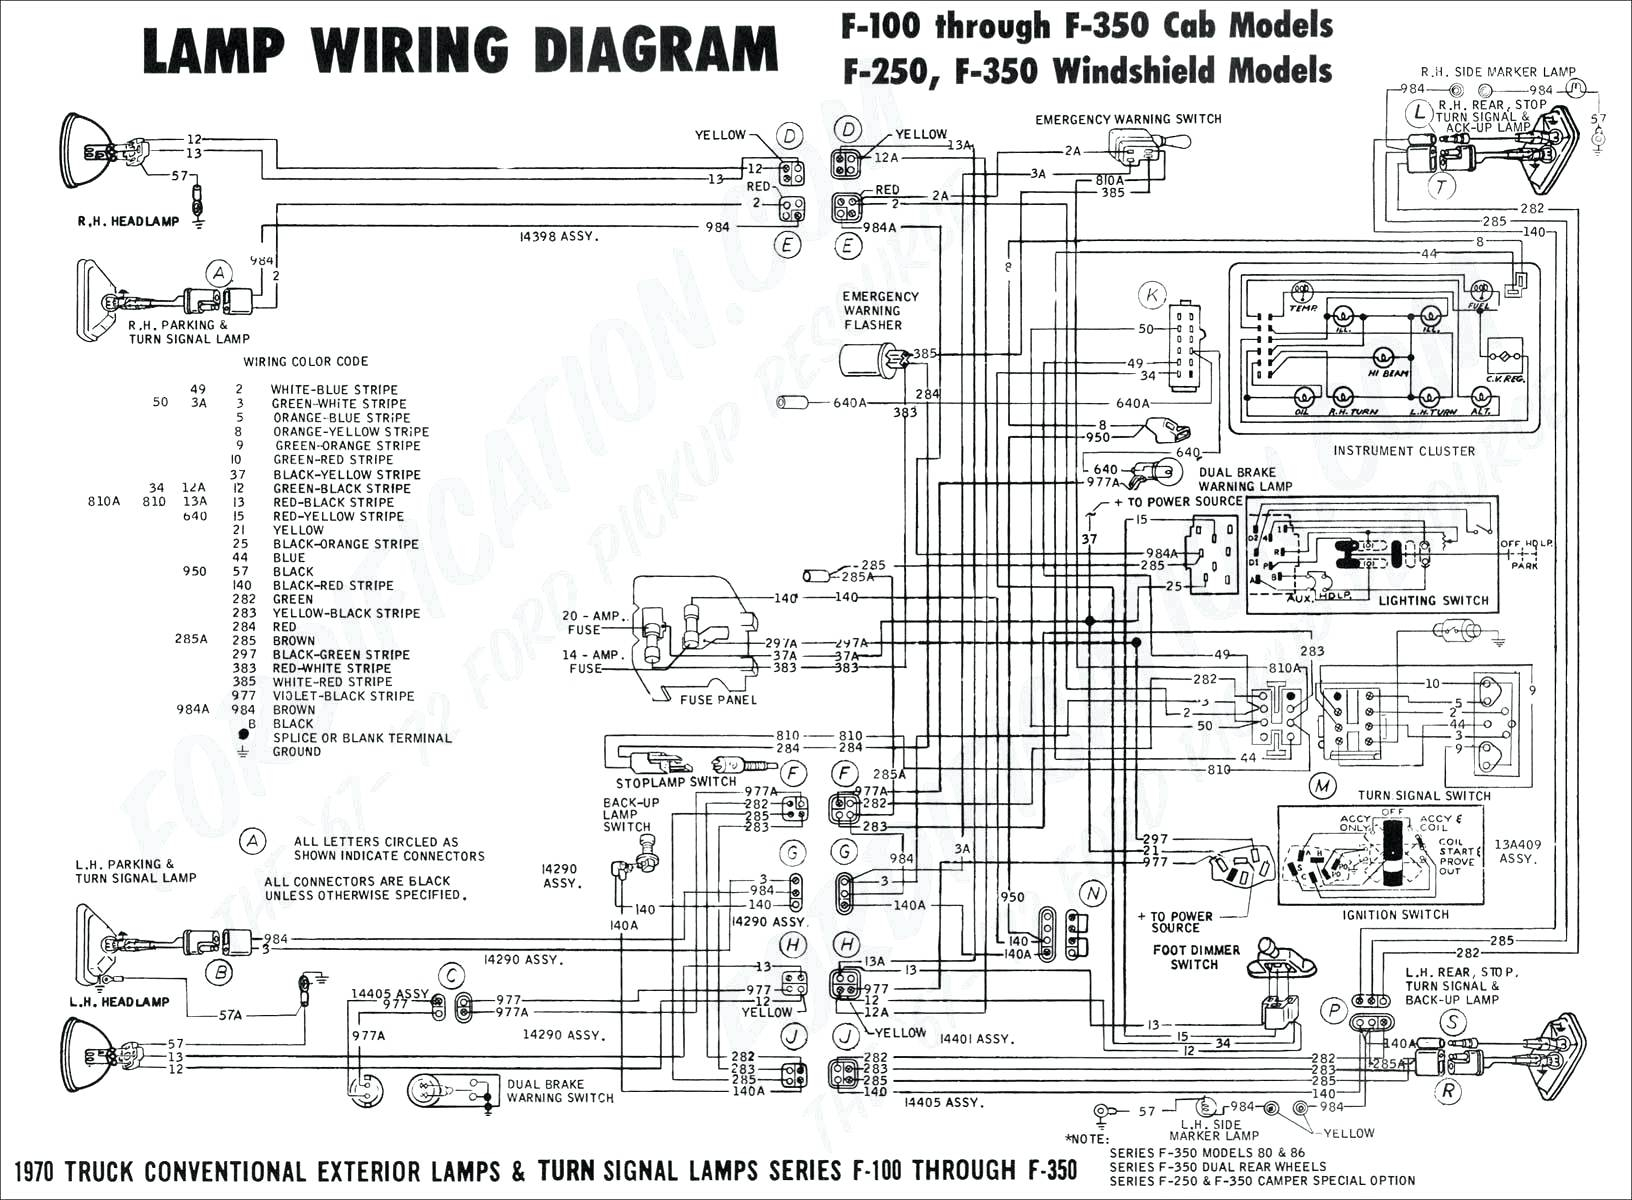 DIAGRAM] 1983 Dodge Ram Wiring Diagram FULL Version HD Quality Wiring  Diagram - CM631UDWIRING.CONCESSIONARIABELOGISENIGALLIA.ITconcessionariabelogisenigallia.it